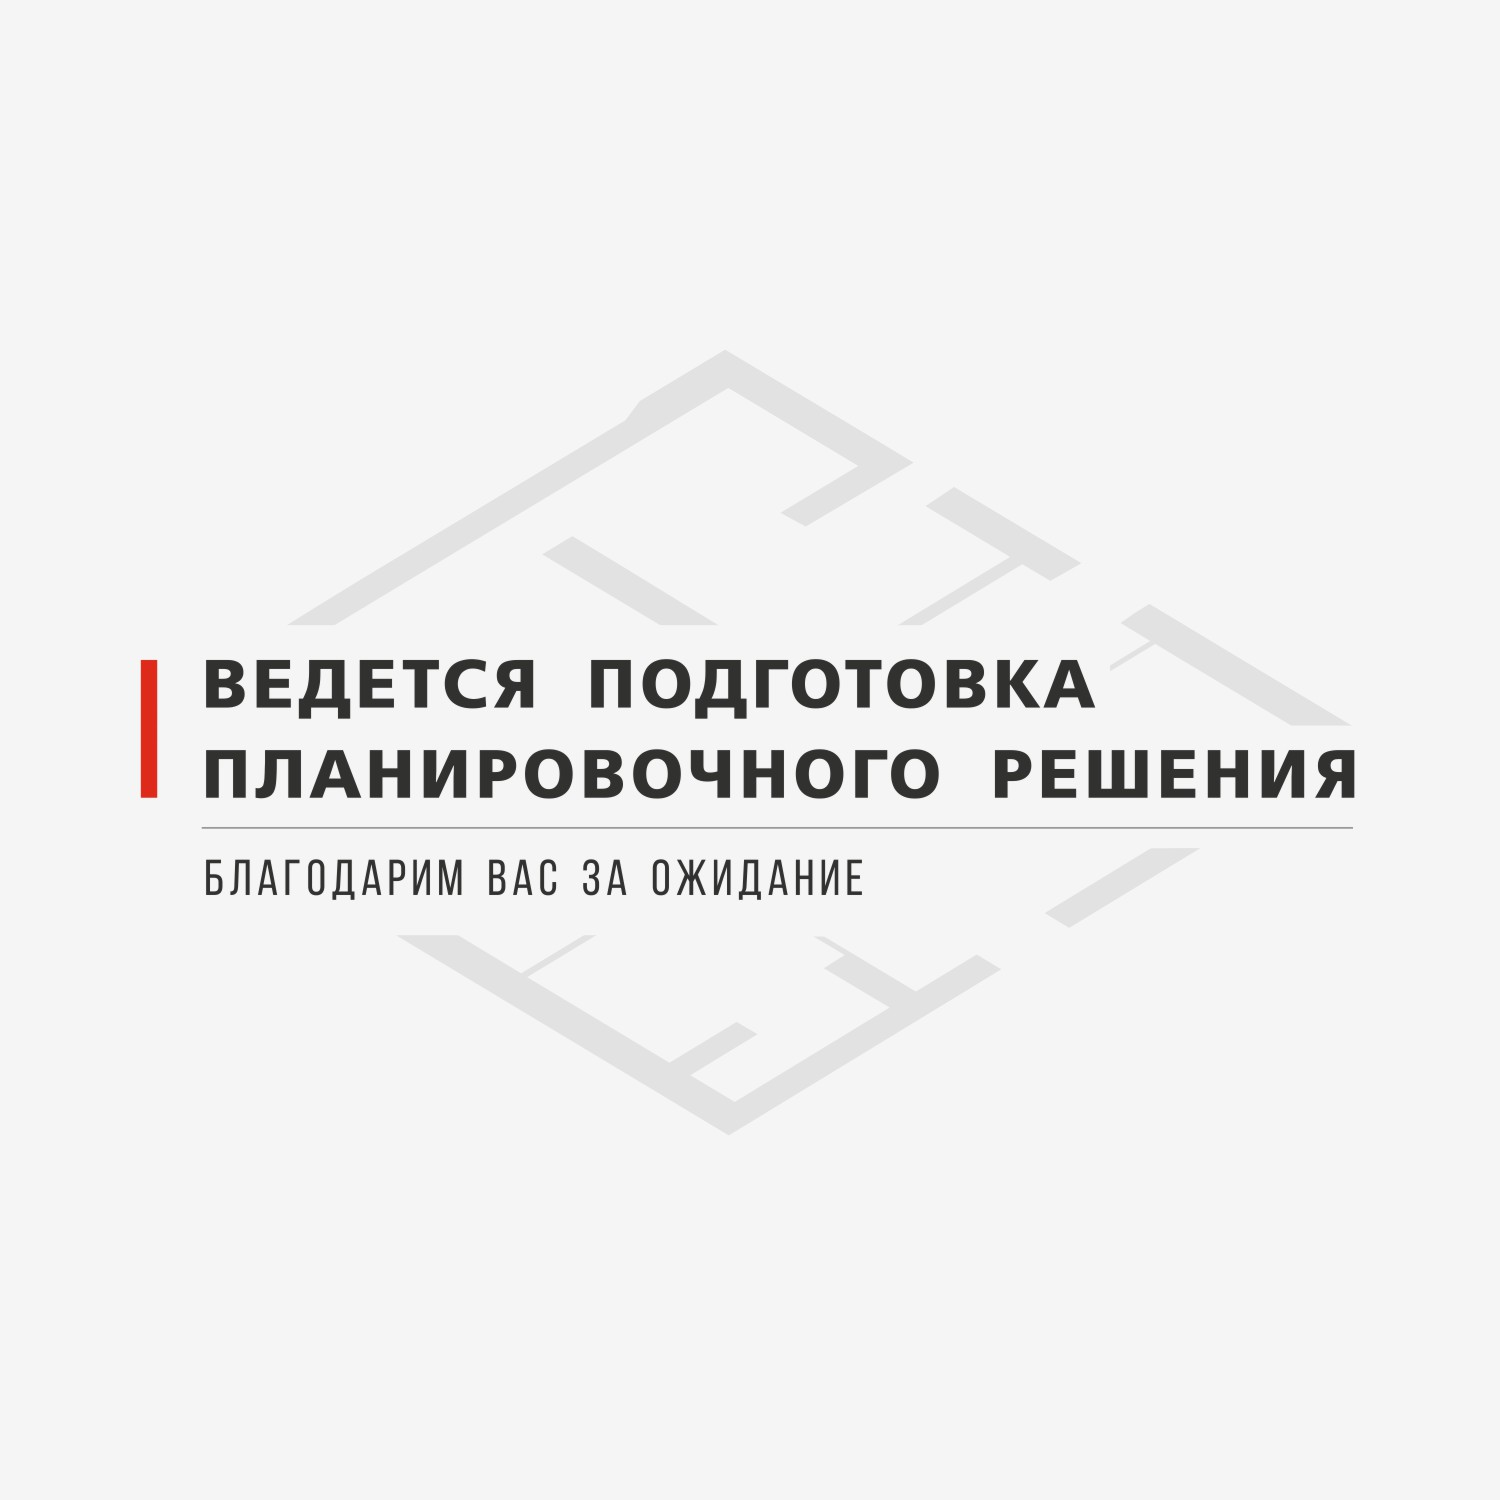 Купить однокомнатную квартиру в новостройке г Москва, ул Лобачевского, д 118 стр 20 - World Real Estate Service «PUSH-KA», объявление №111767